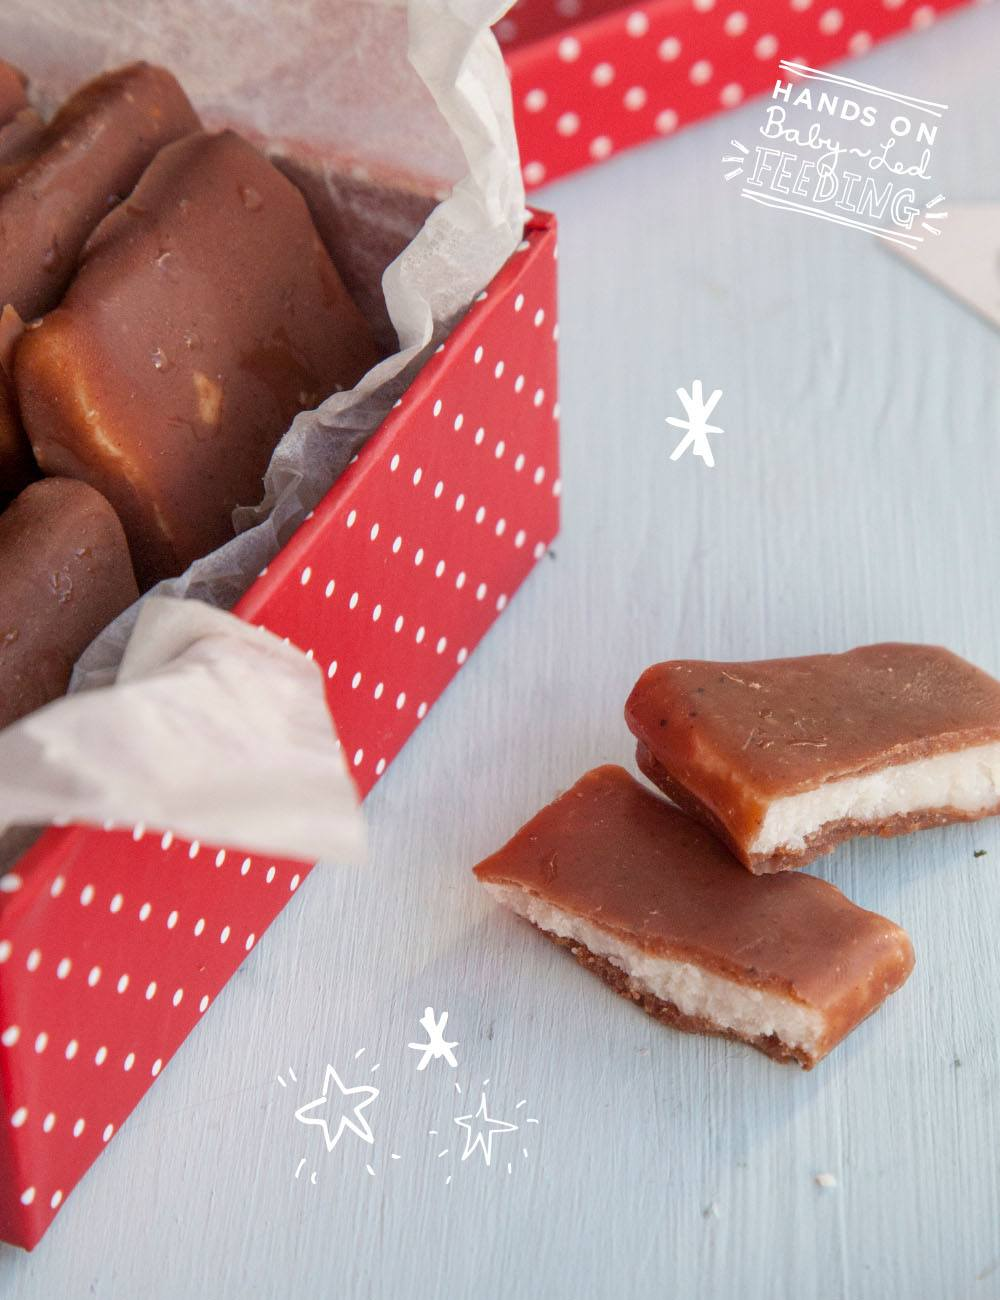 Healthy Wafer Thin Mints, Healthy After Eights Baby Led Feeding Delicious treats perfect for Christmas baby led weaning. Zoomed in image of healthy chocolate for baby led weaning recipe for Christmas. Christmas ideas for baby led weaning.